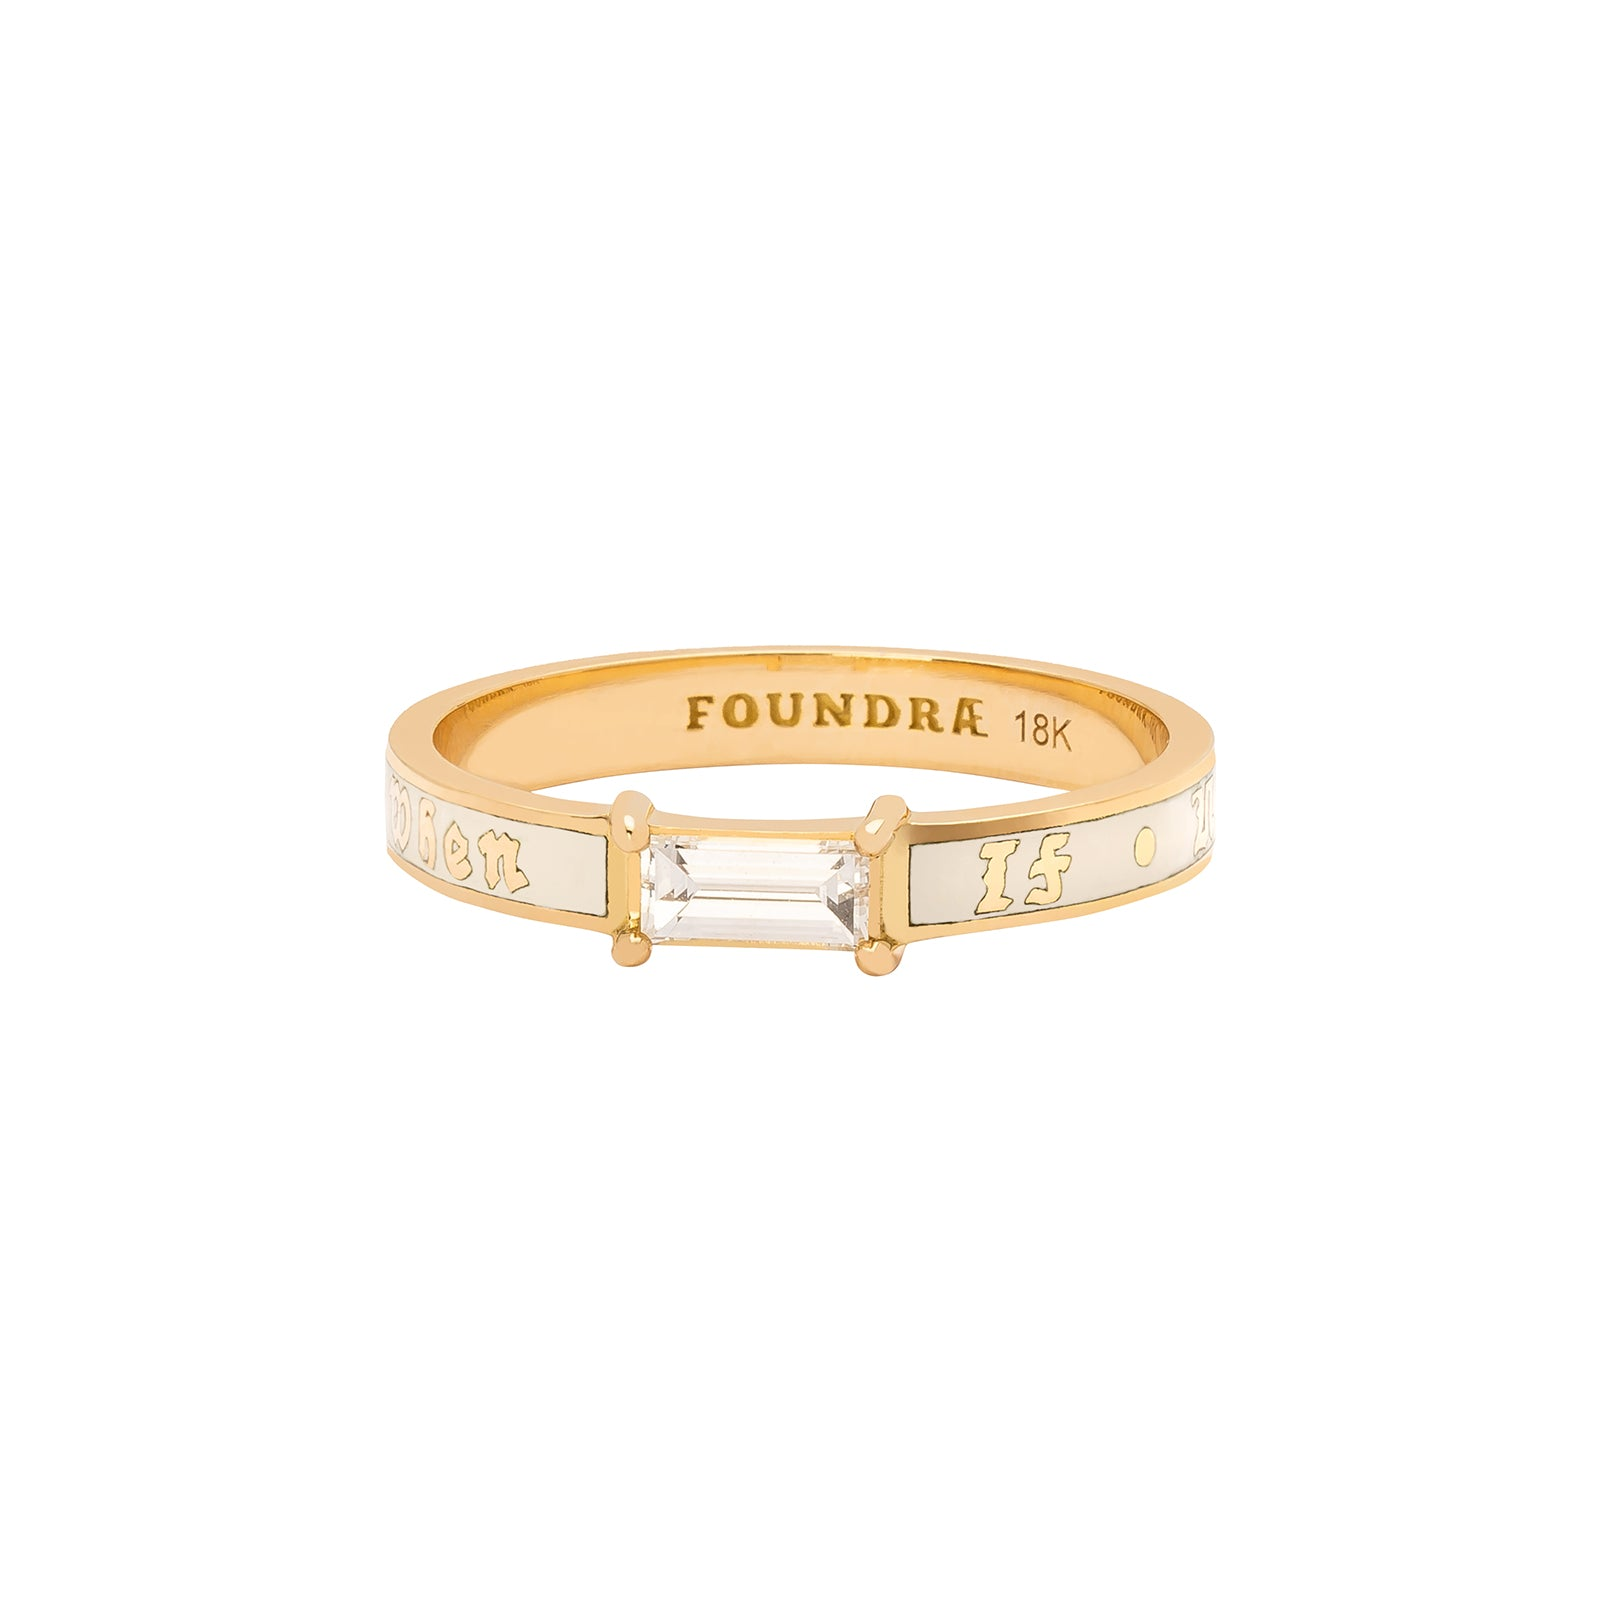 Foundrae If Not Now Then When Ring - Cream Enamel - Rings - Broken English Jewelry